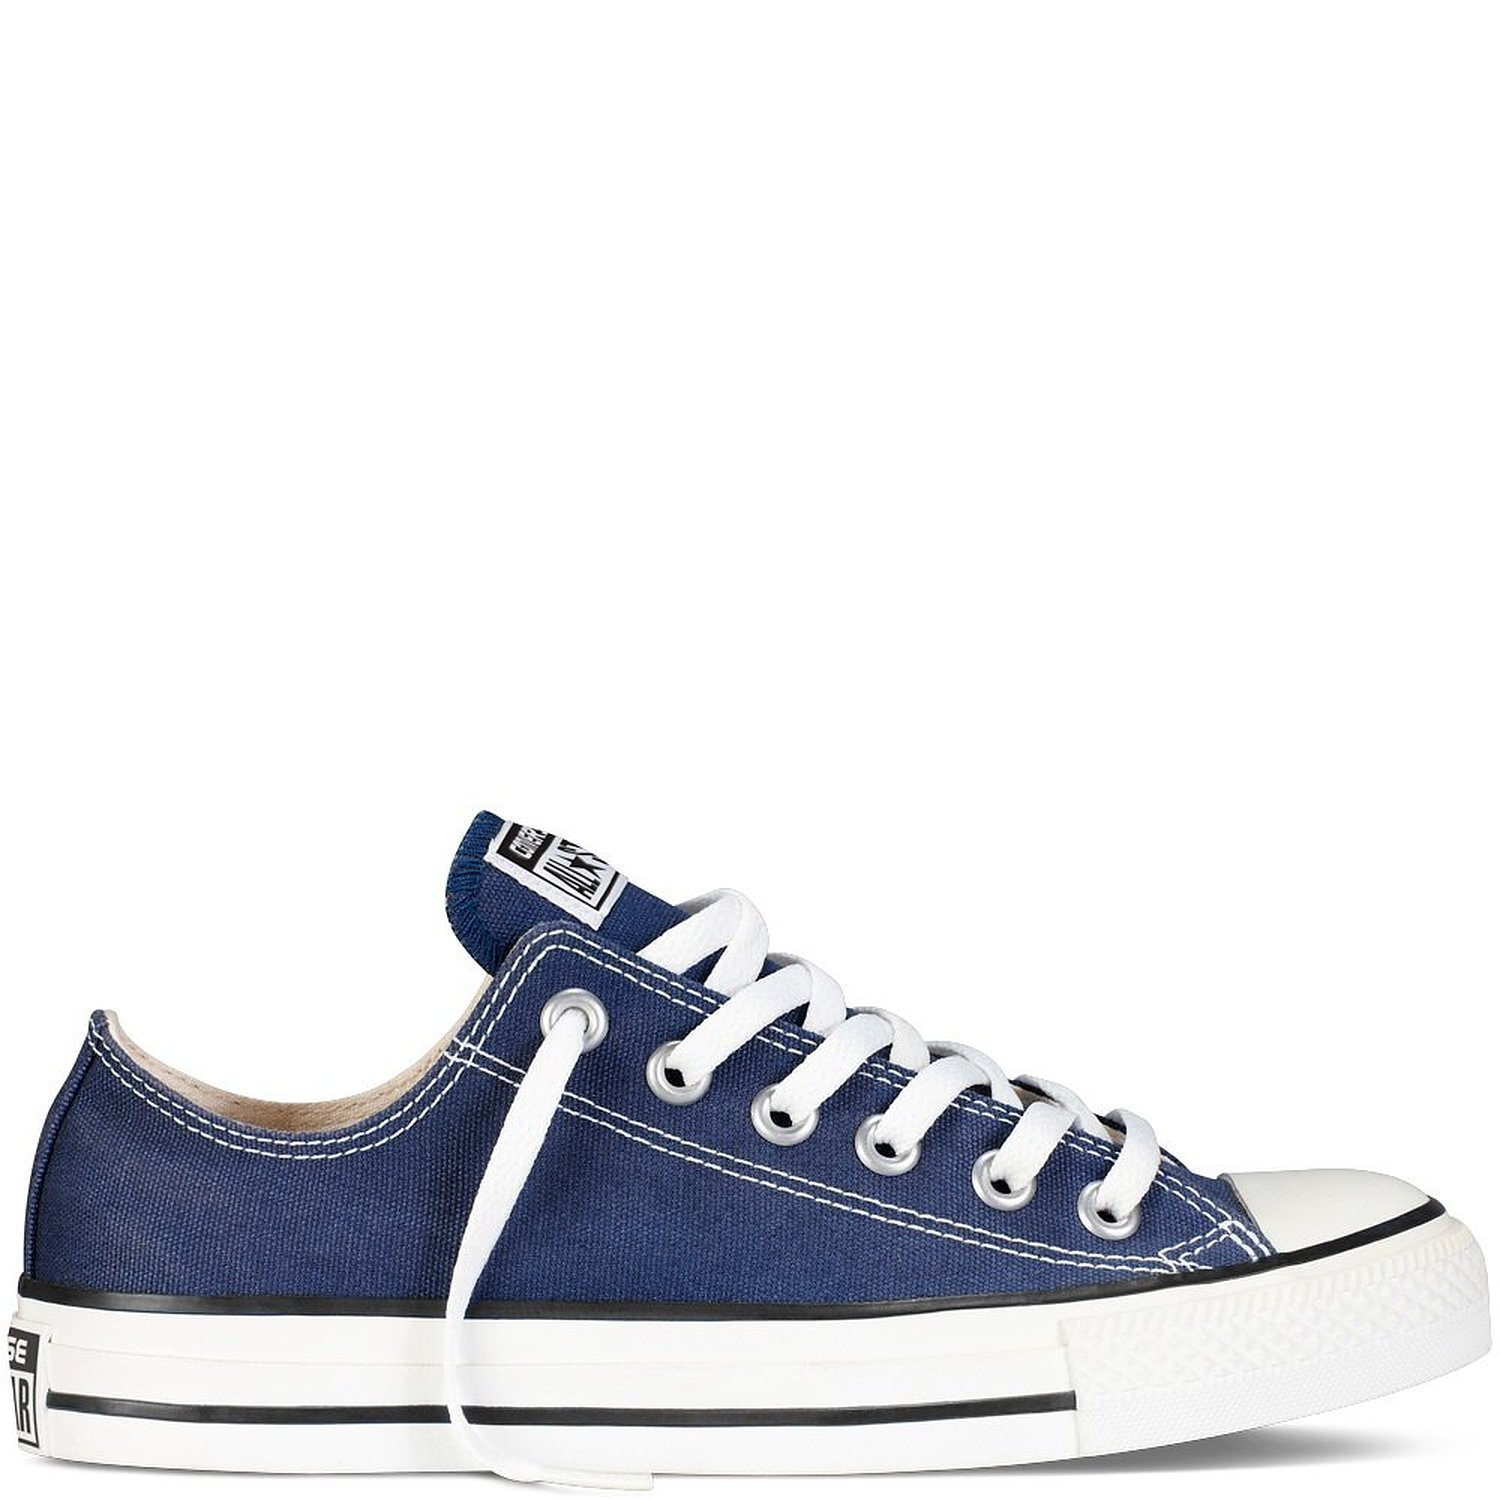 Mens Converse Chuck Taylor All Star Low Top Sneakers Blue